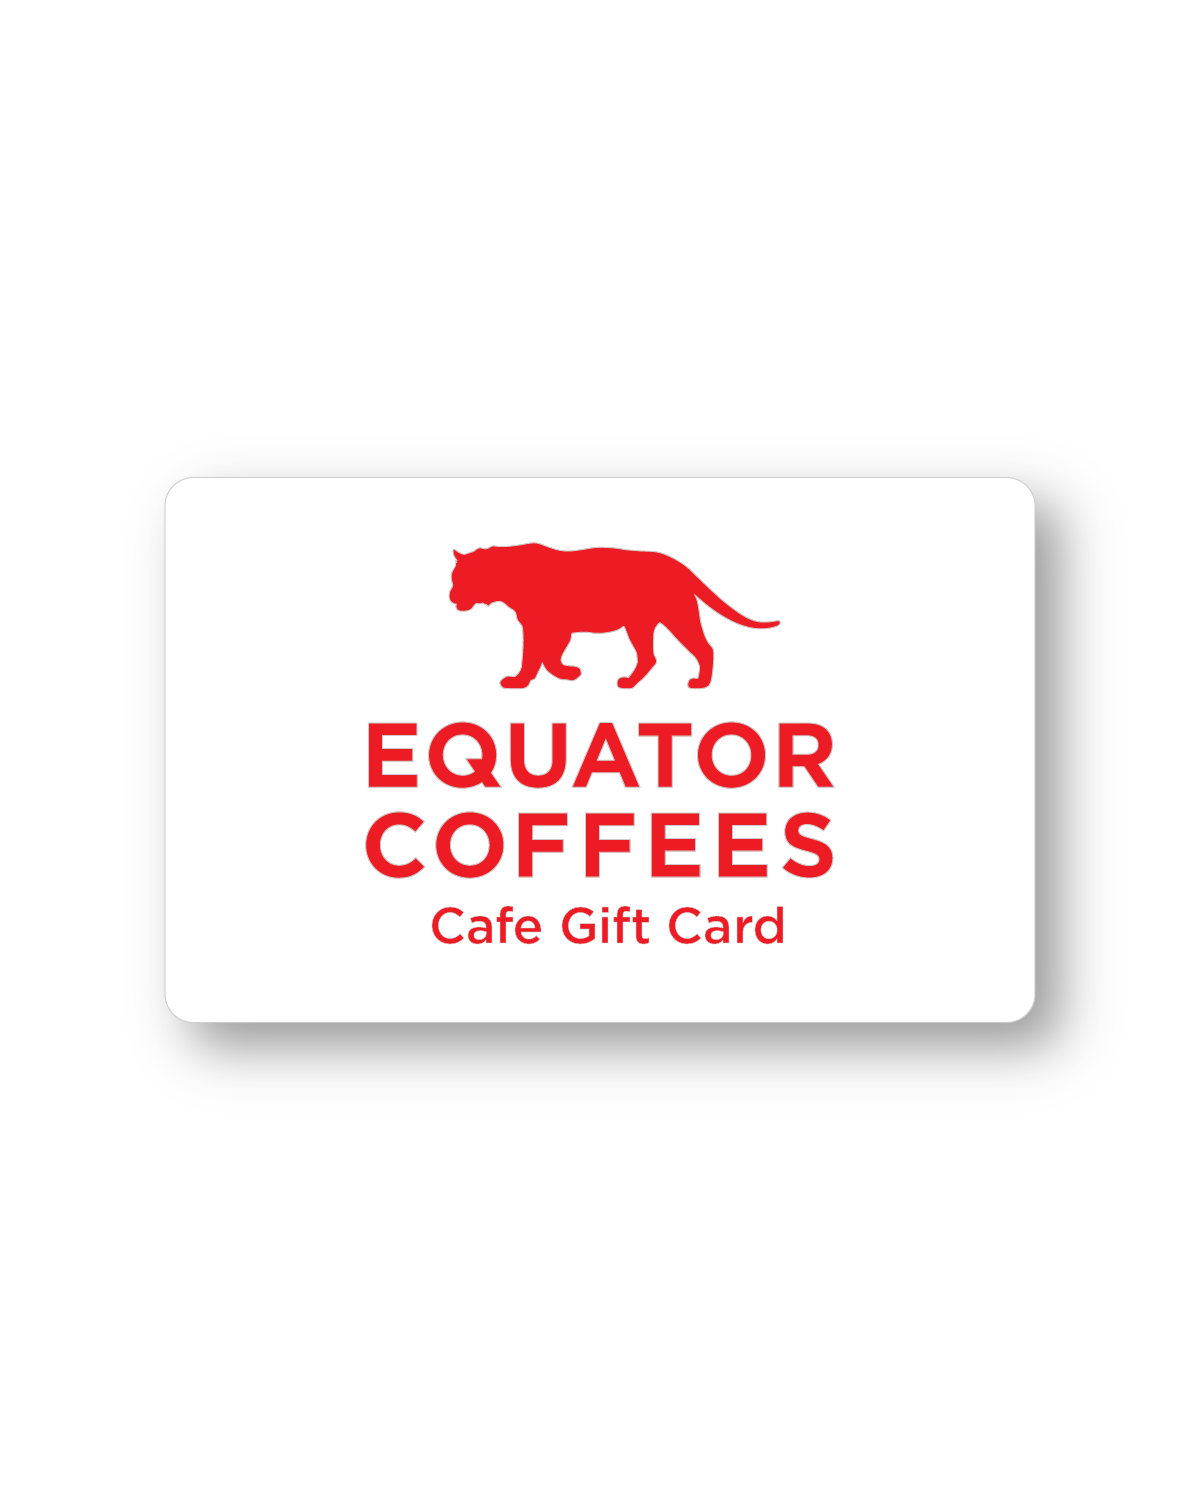 Gift Card - Equator Cafes